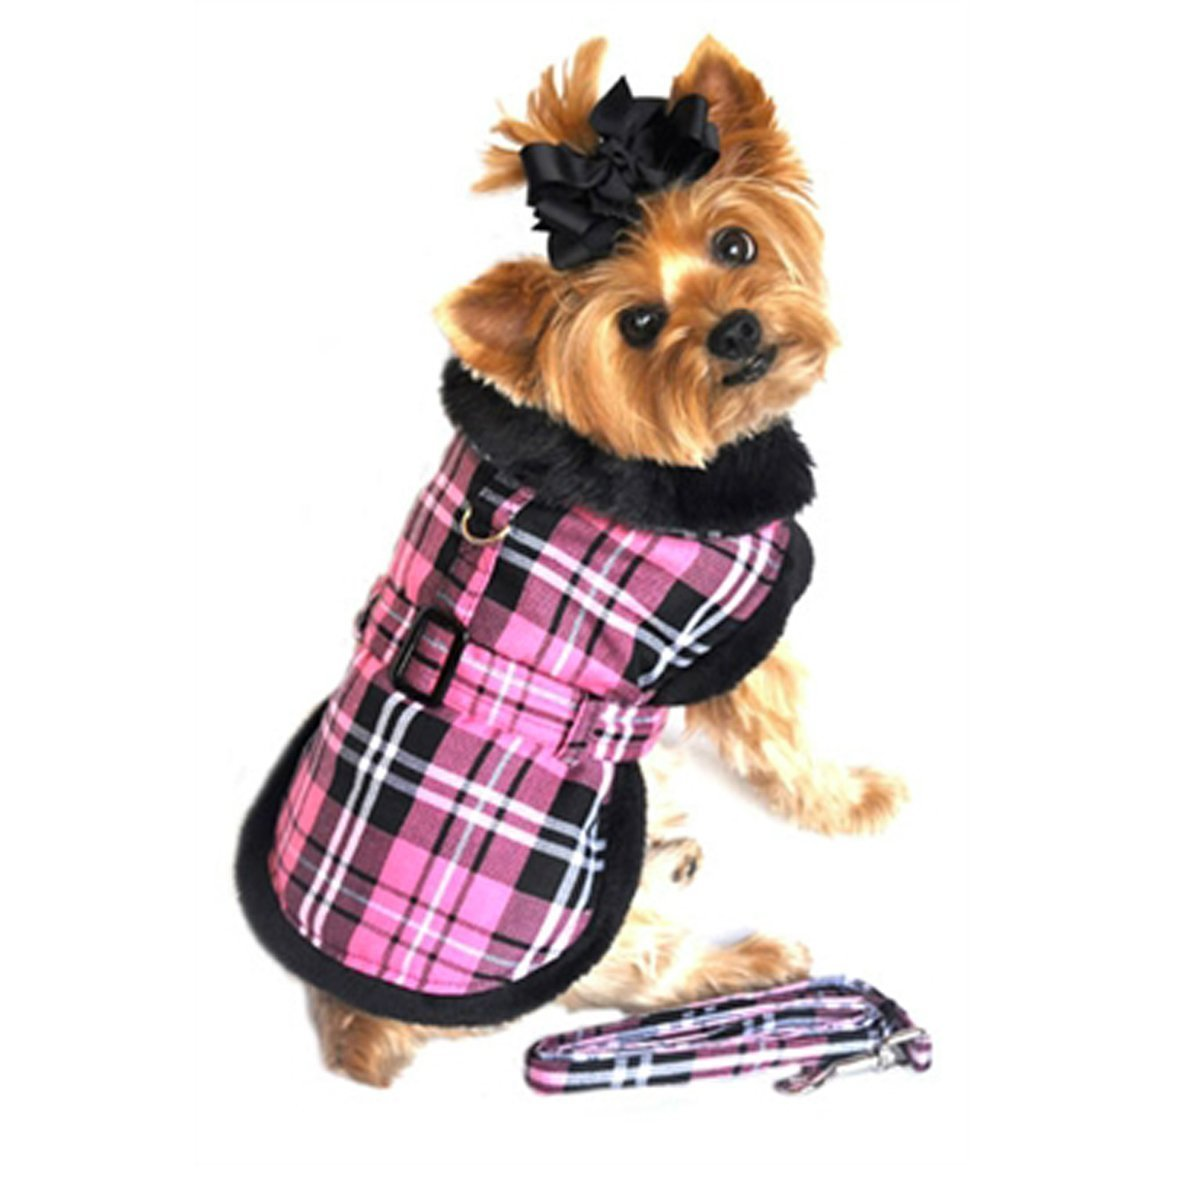 XS (10\ Doggie Design Pink Classic Plaid Wool fur Collared Harness Coat W leash Size X-Small (Chest 10-13  , Neck 7-10', weight 3-6Lbs.)